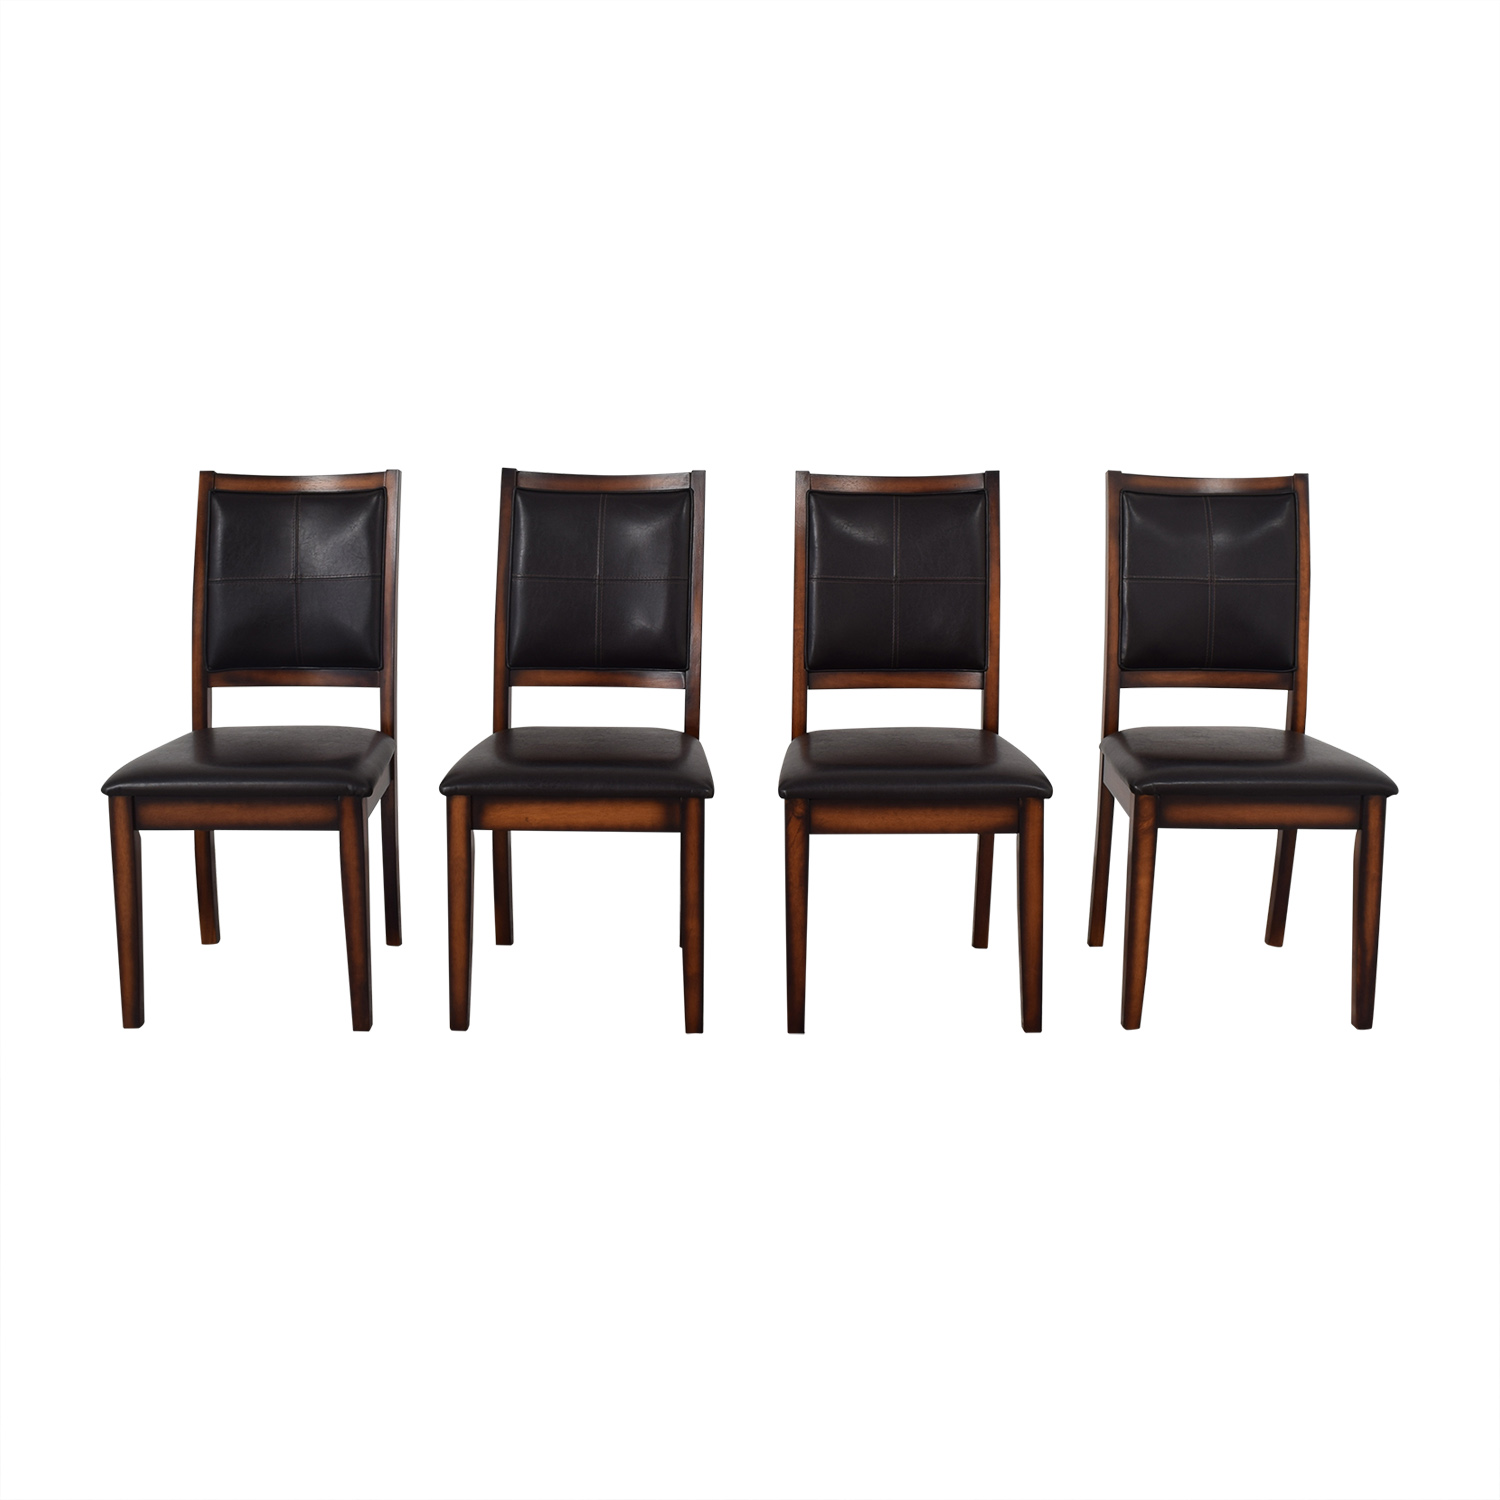 Raymour And Flanigan Dining Chairs: Raymour & Flanigan Raymour & Flanigan